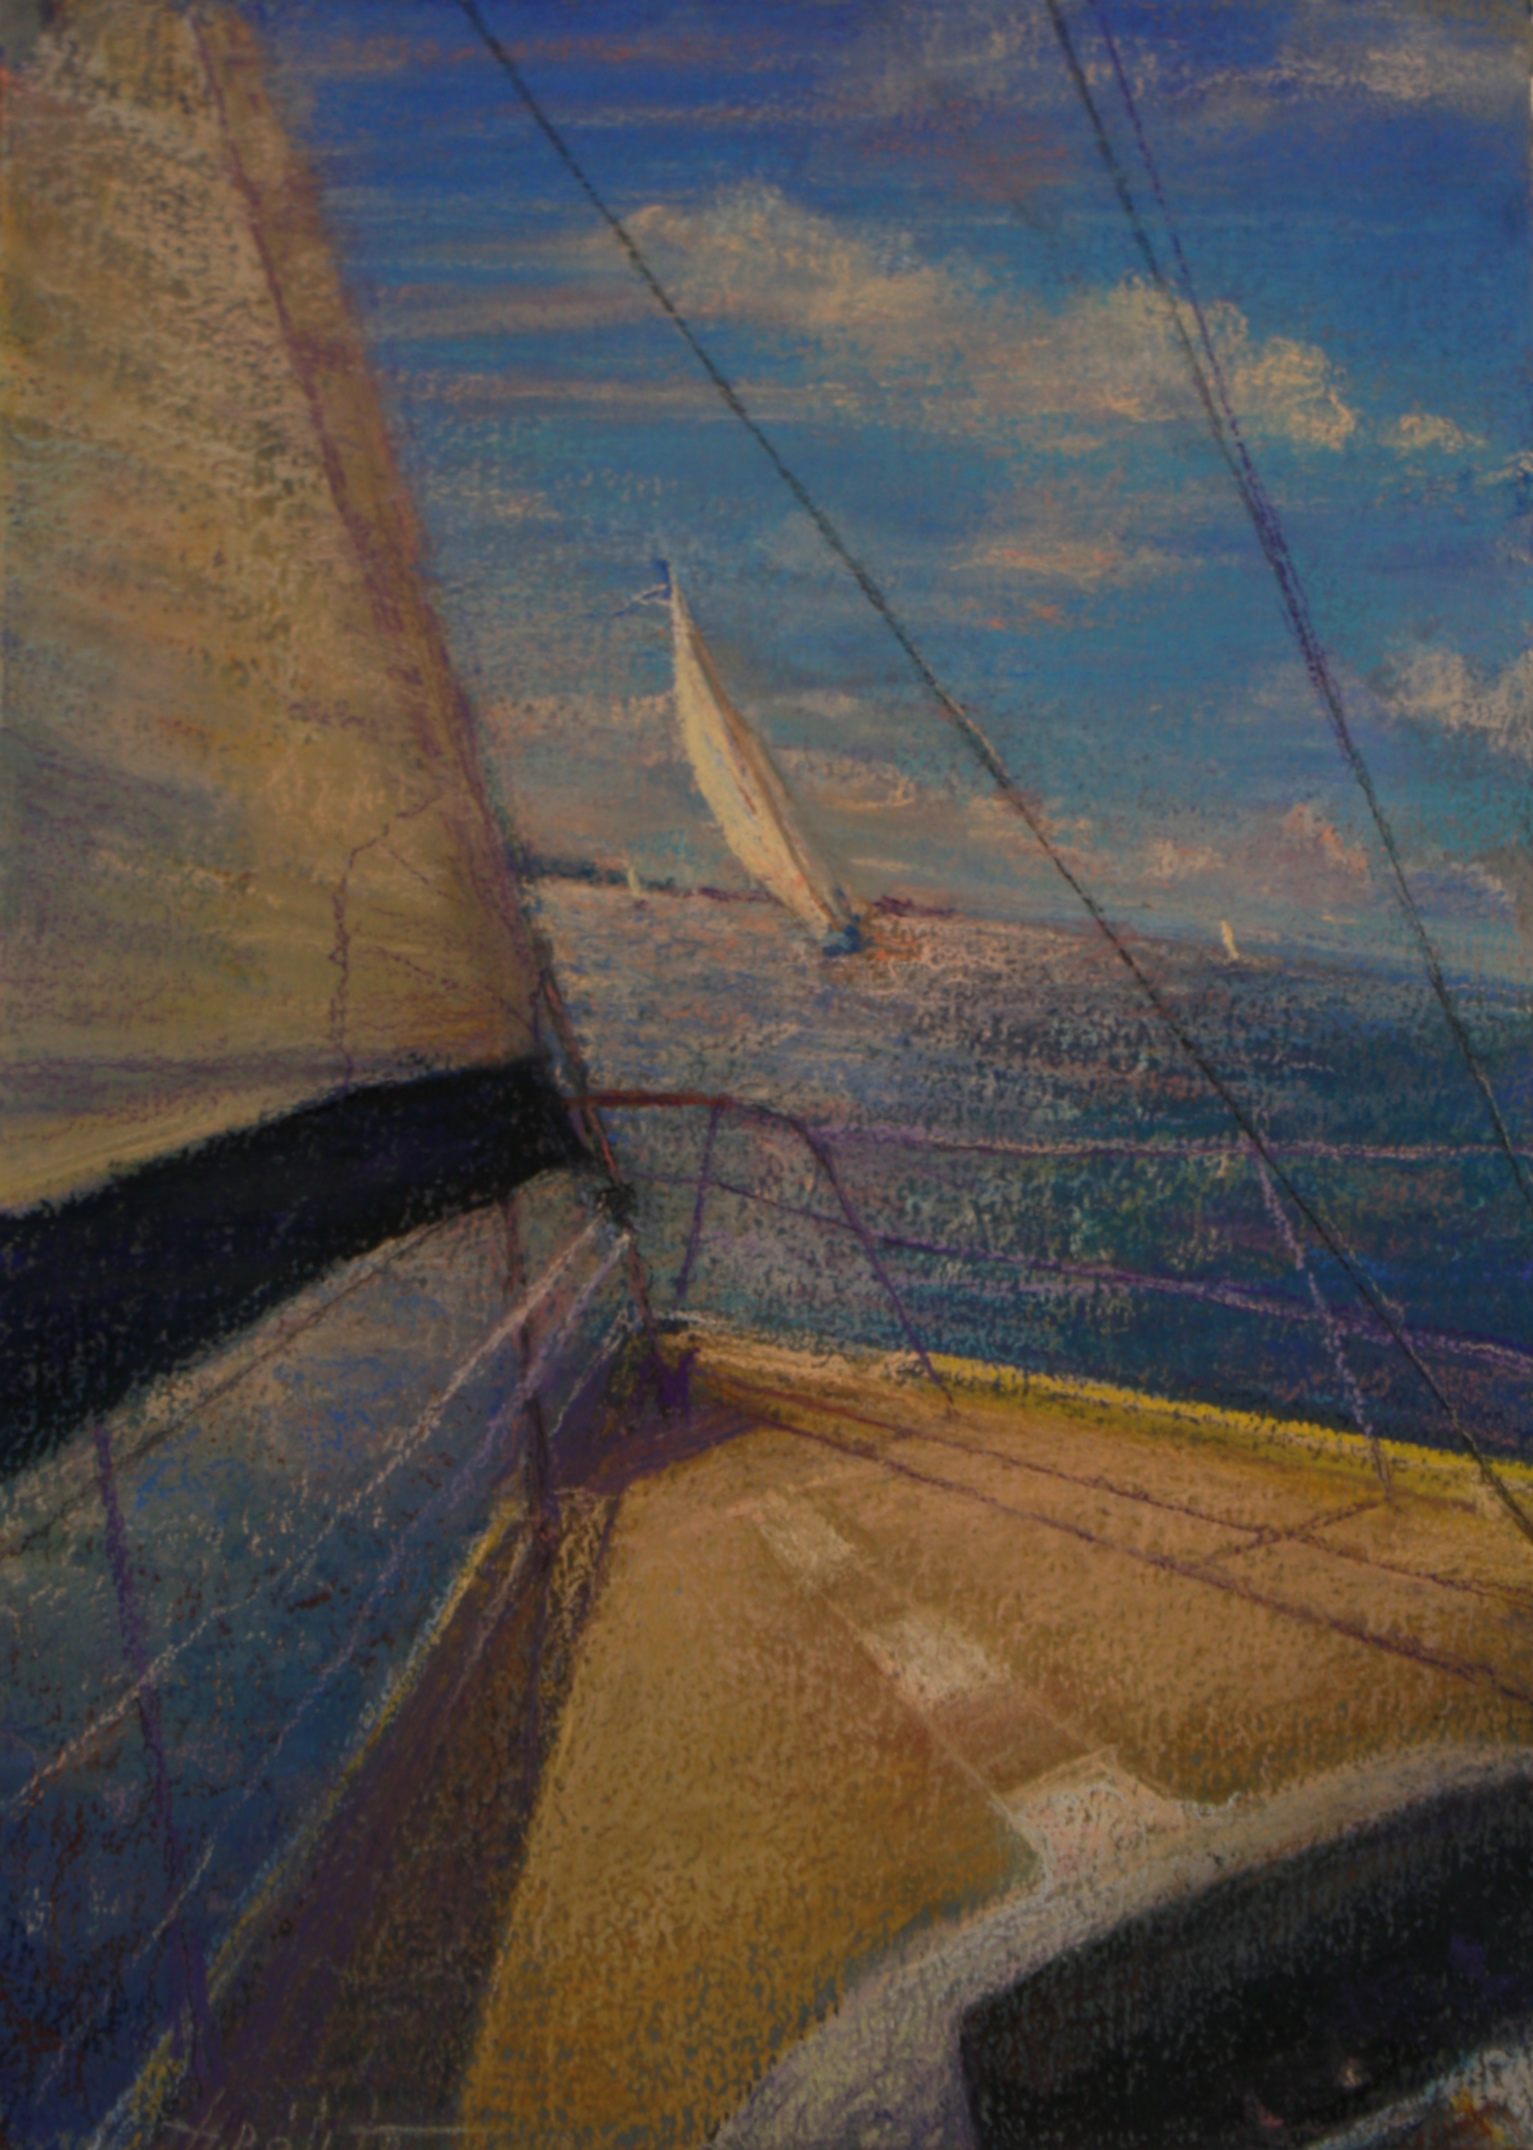 Tacking Sailing Winds